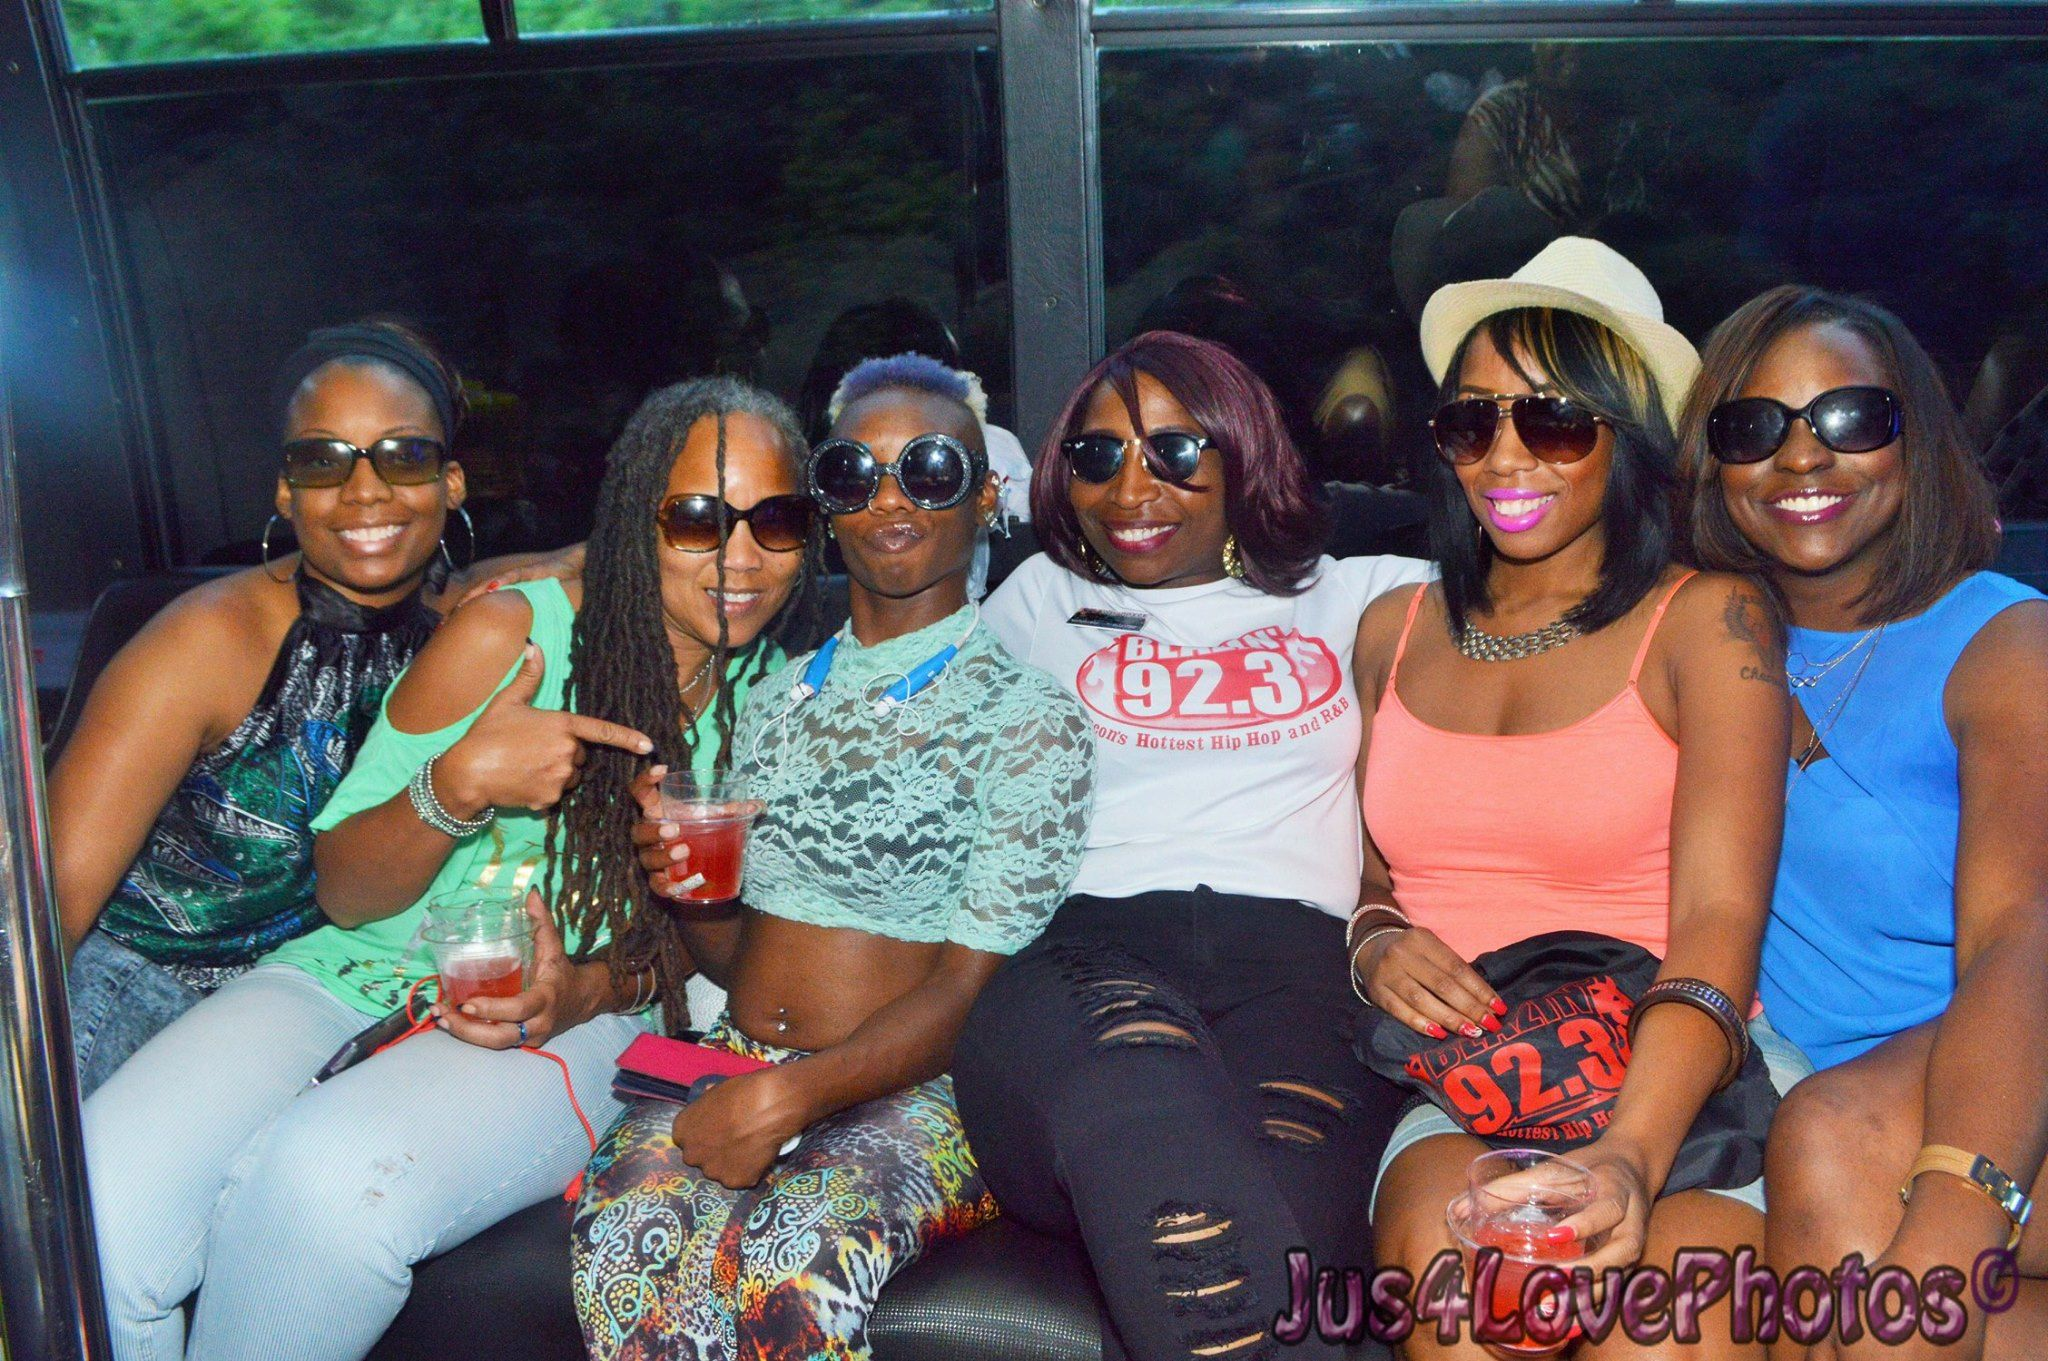 Jus4LovePhotos OnTheScene @RoycEvents  Party Bus Bound 4 Wolfcreek